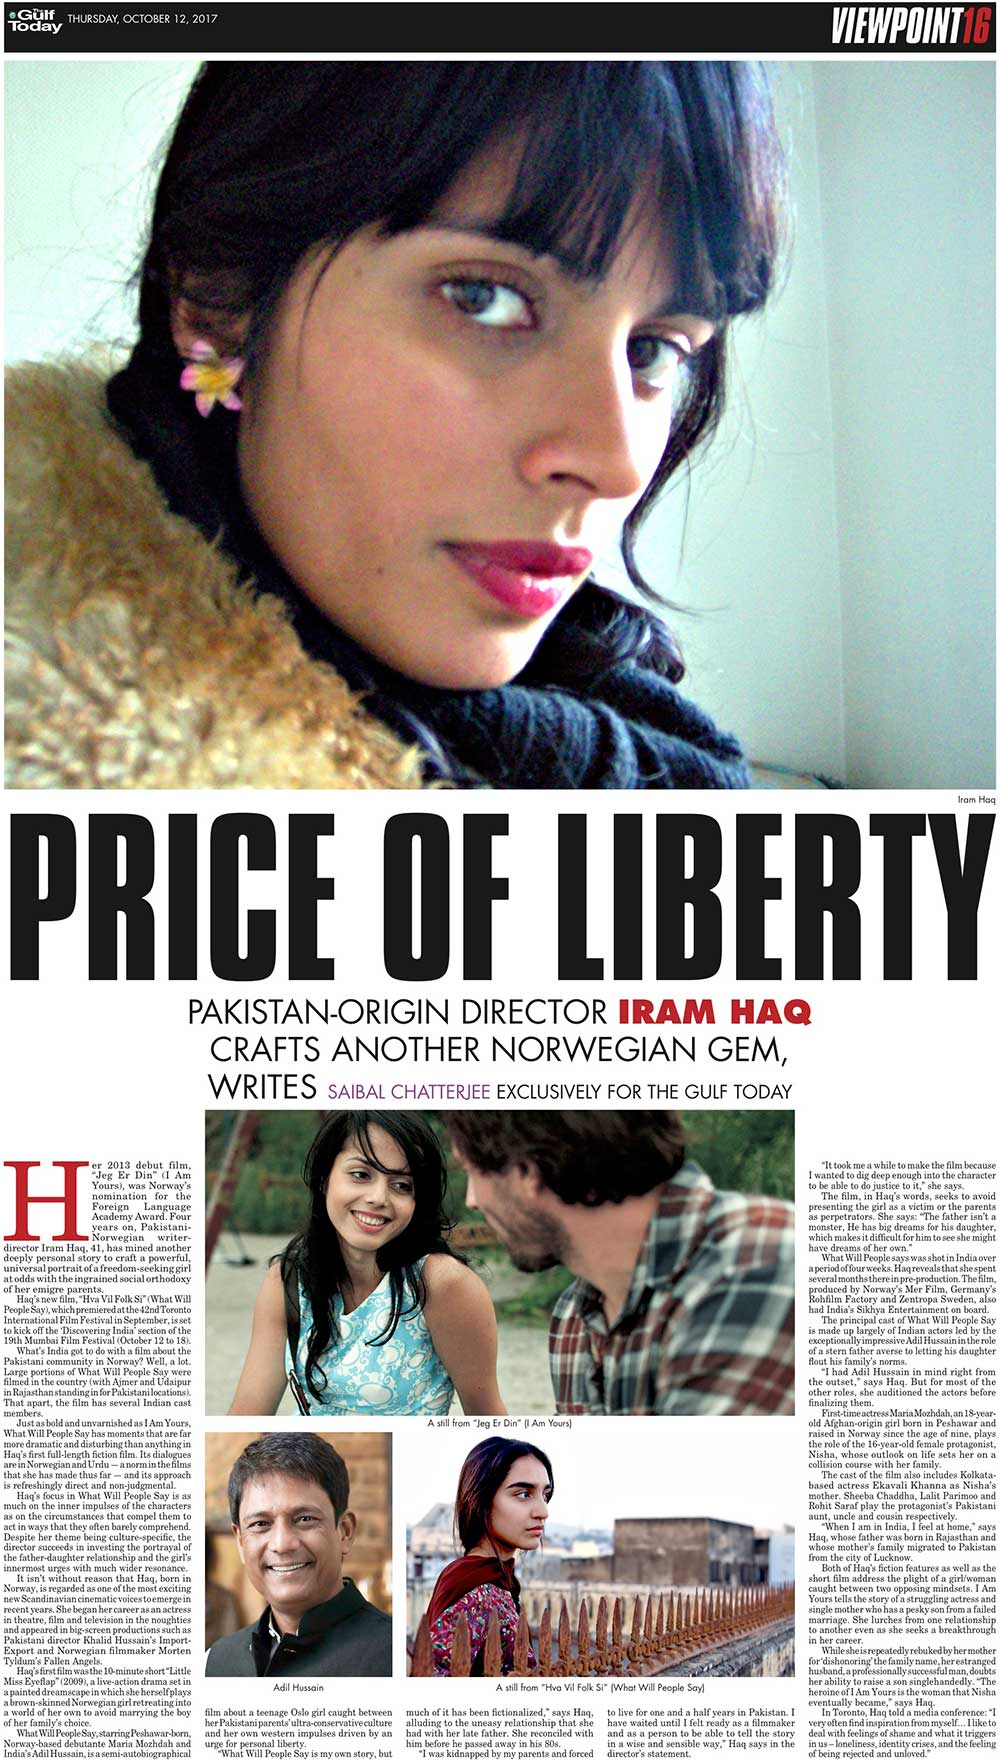 Gulftoday price of liberty her 2013 debut film jeg er din i am yours was norways nomination for the foreign language academy award four years on pakistani norwegian ccuart Choice Image